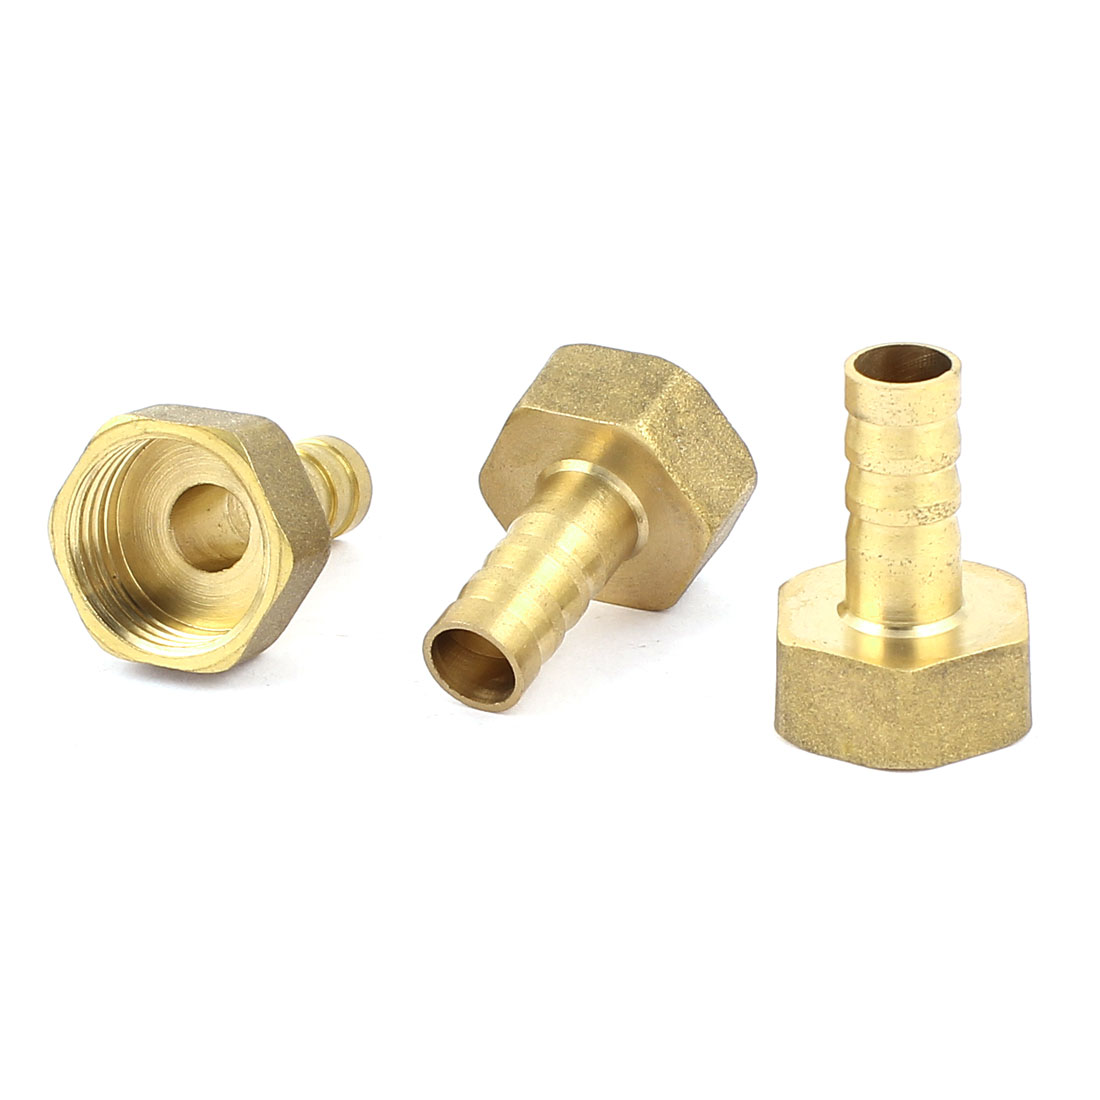 Female Pipe Fitting Straight Hose Barb Adapter Brass Tone 23mm x 33mm 3 Pcs